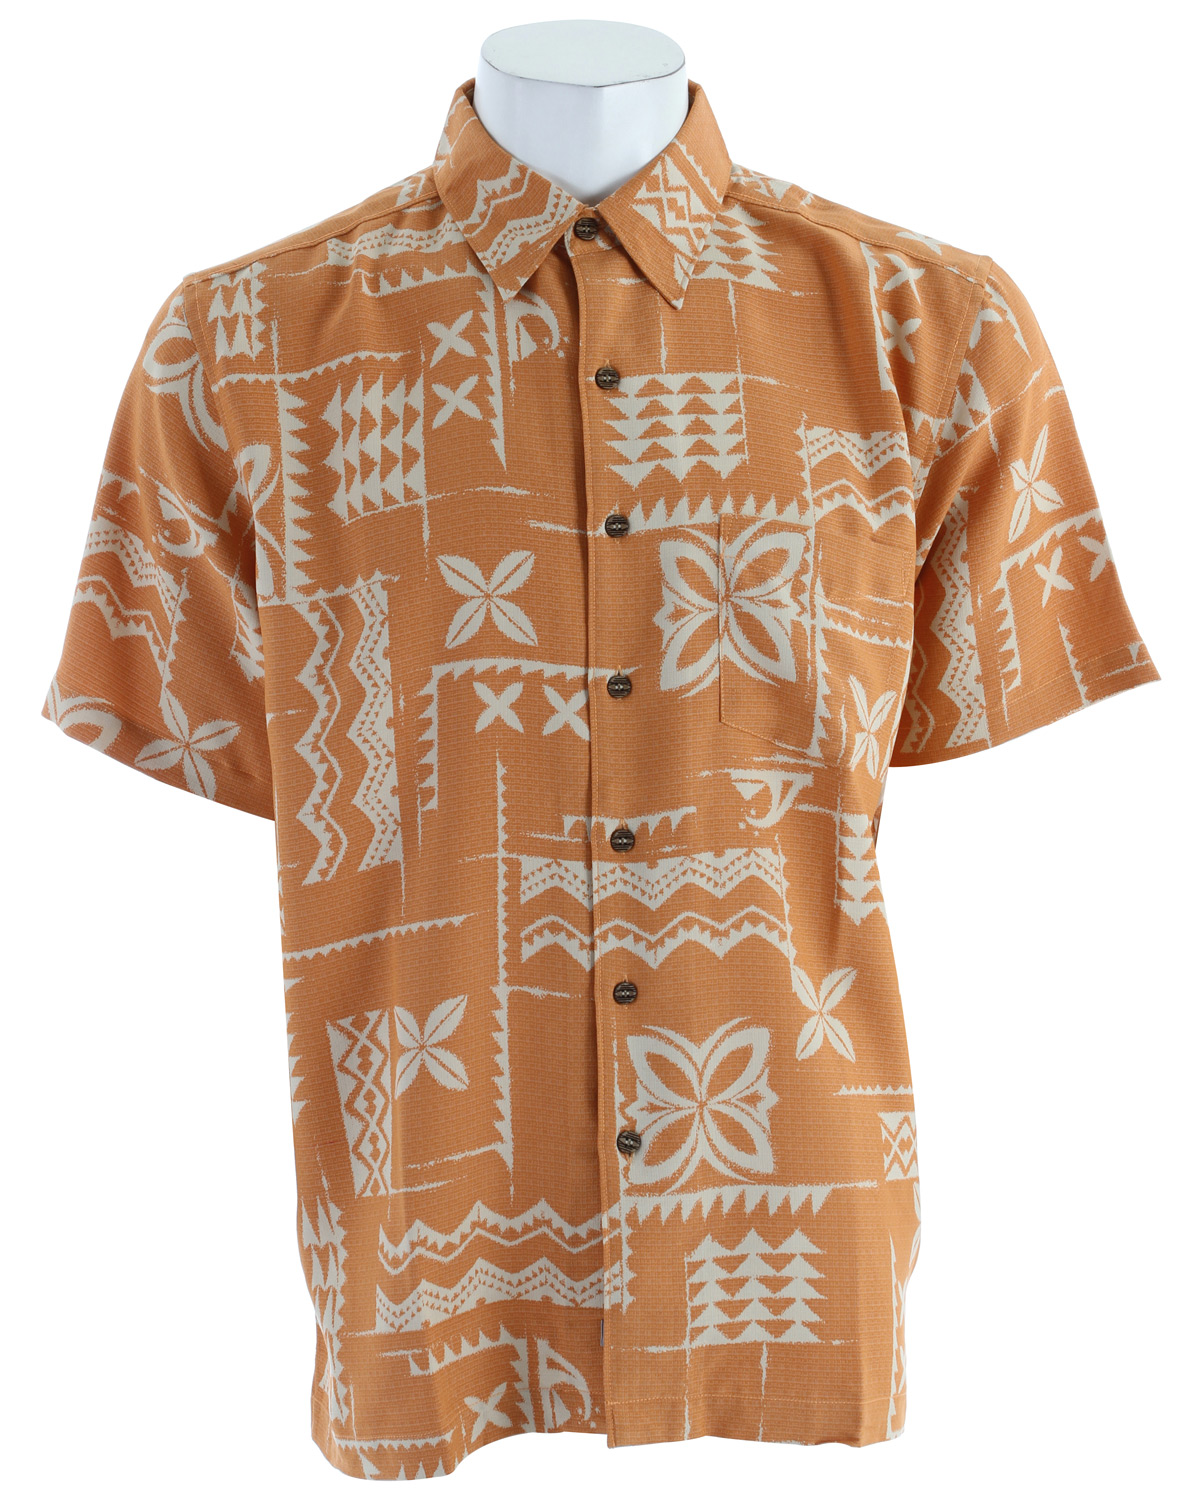 Surf Short sleeve shirt with pocket and chainstitch detail. 86% polynosic, 14% polyester crosshatch - $48.95